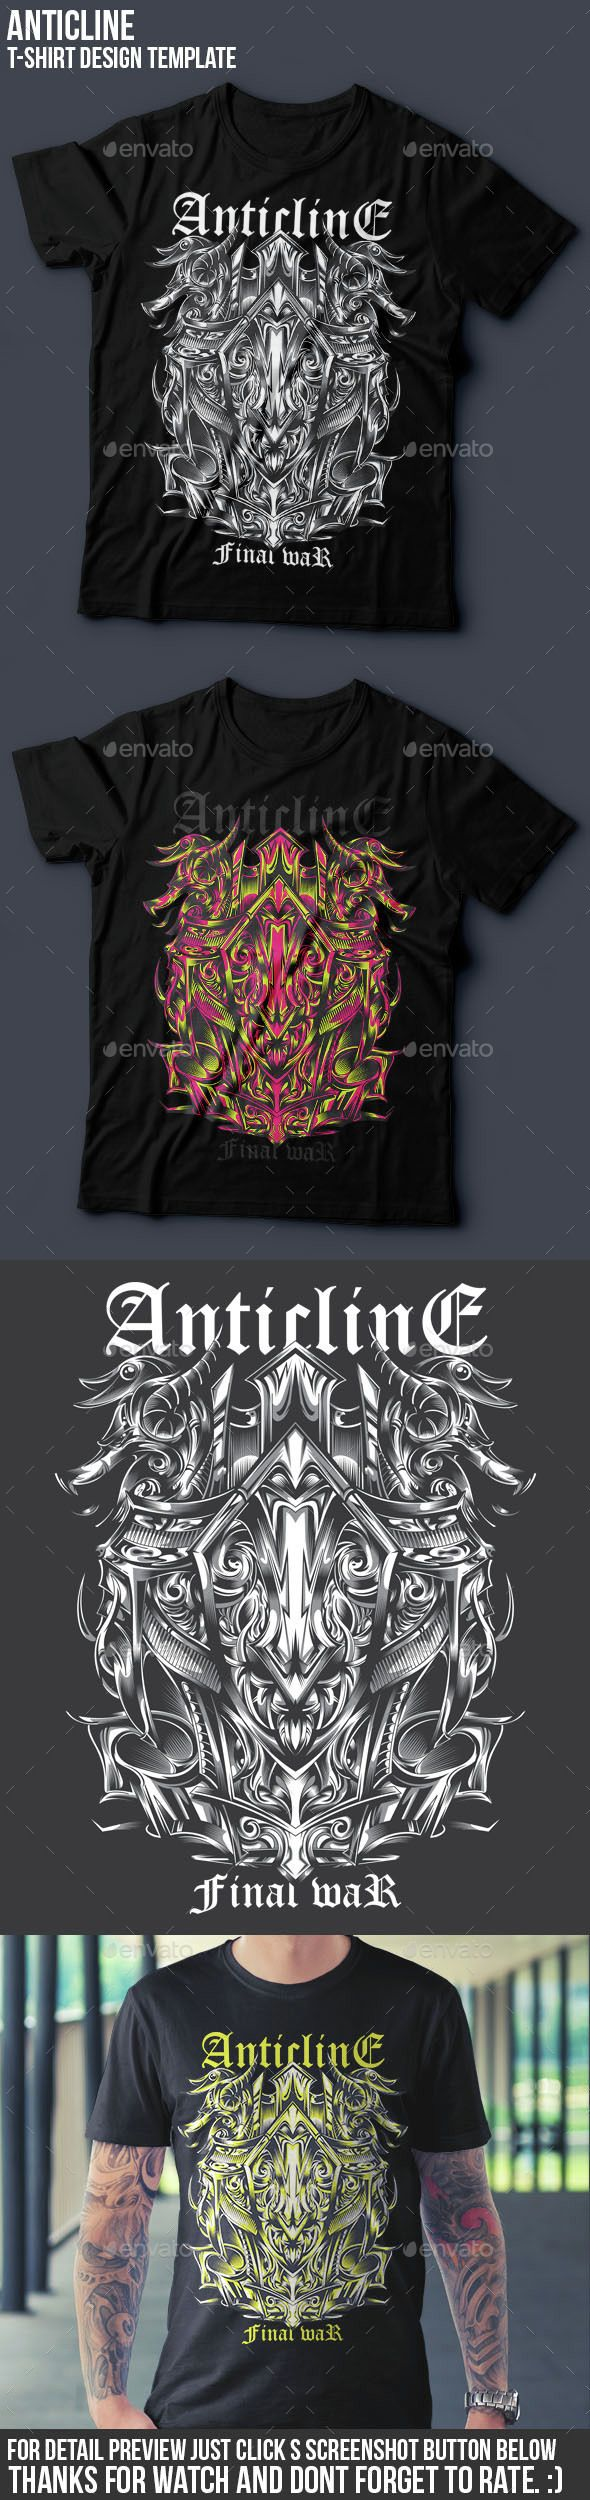 Shirt design template software